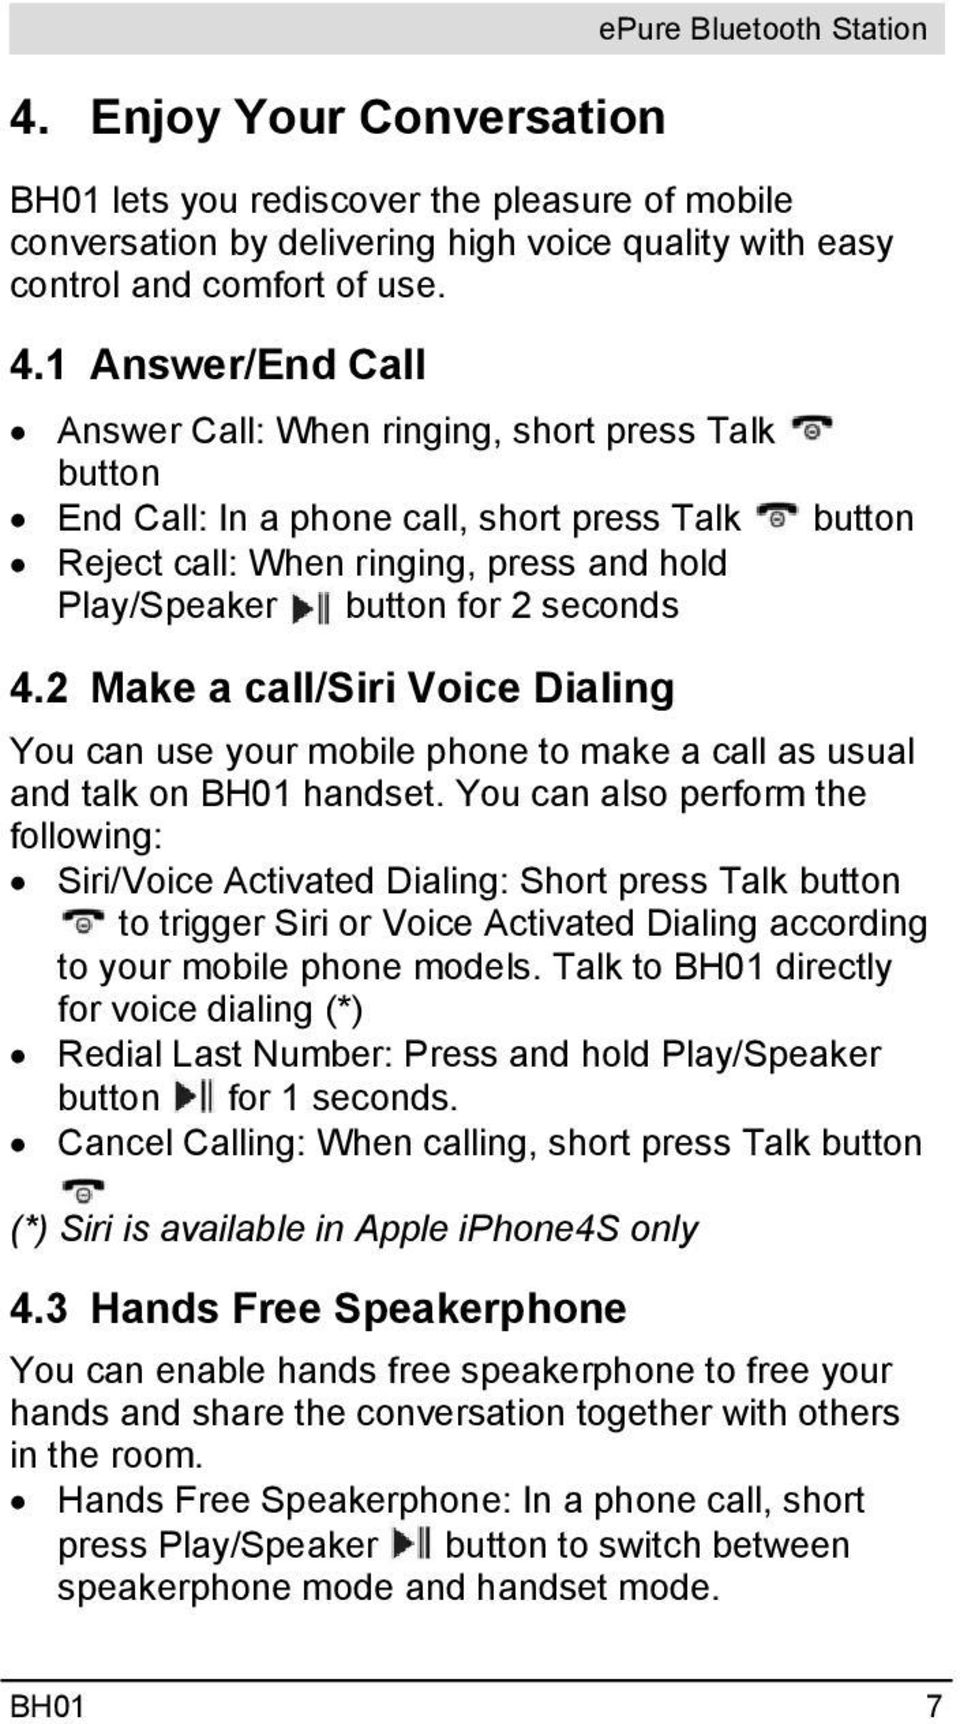 2 Make a call/siri Voice Dialing You can use your mobile phone to make a call as usual and talk on BH01 handset.